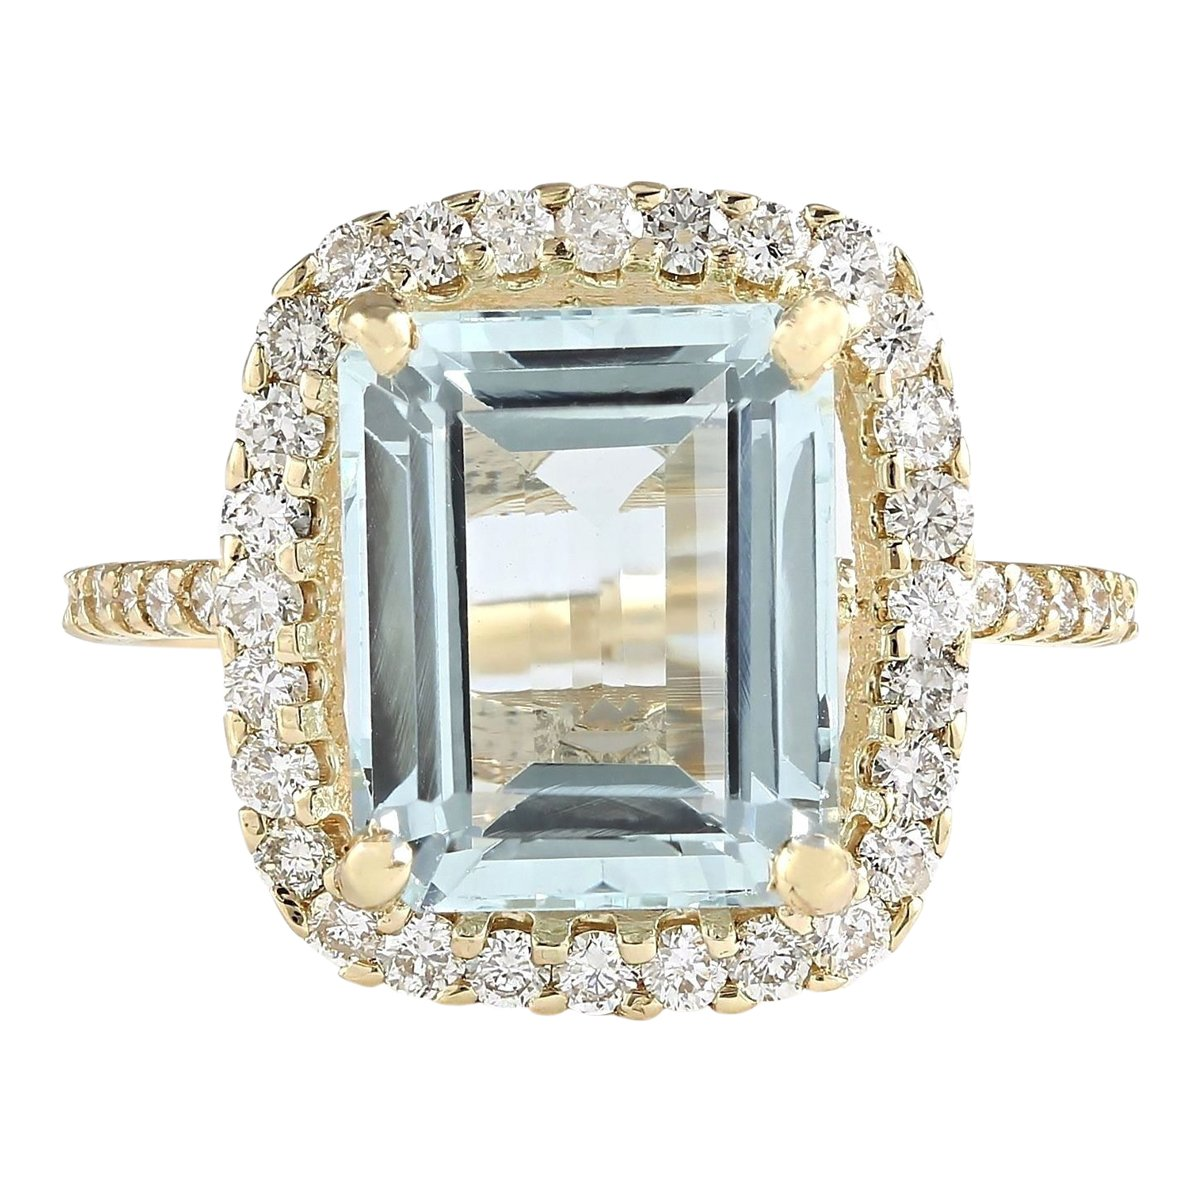 5.2 Carat Natural Blue Aquamarine and Diamond (F-G Color, VS1-VS2 Clarity) 14K Yellow Gold Cocktail Ring for Women Exclusively Handcrafted in USA by Unknown